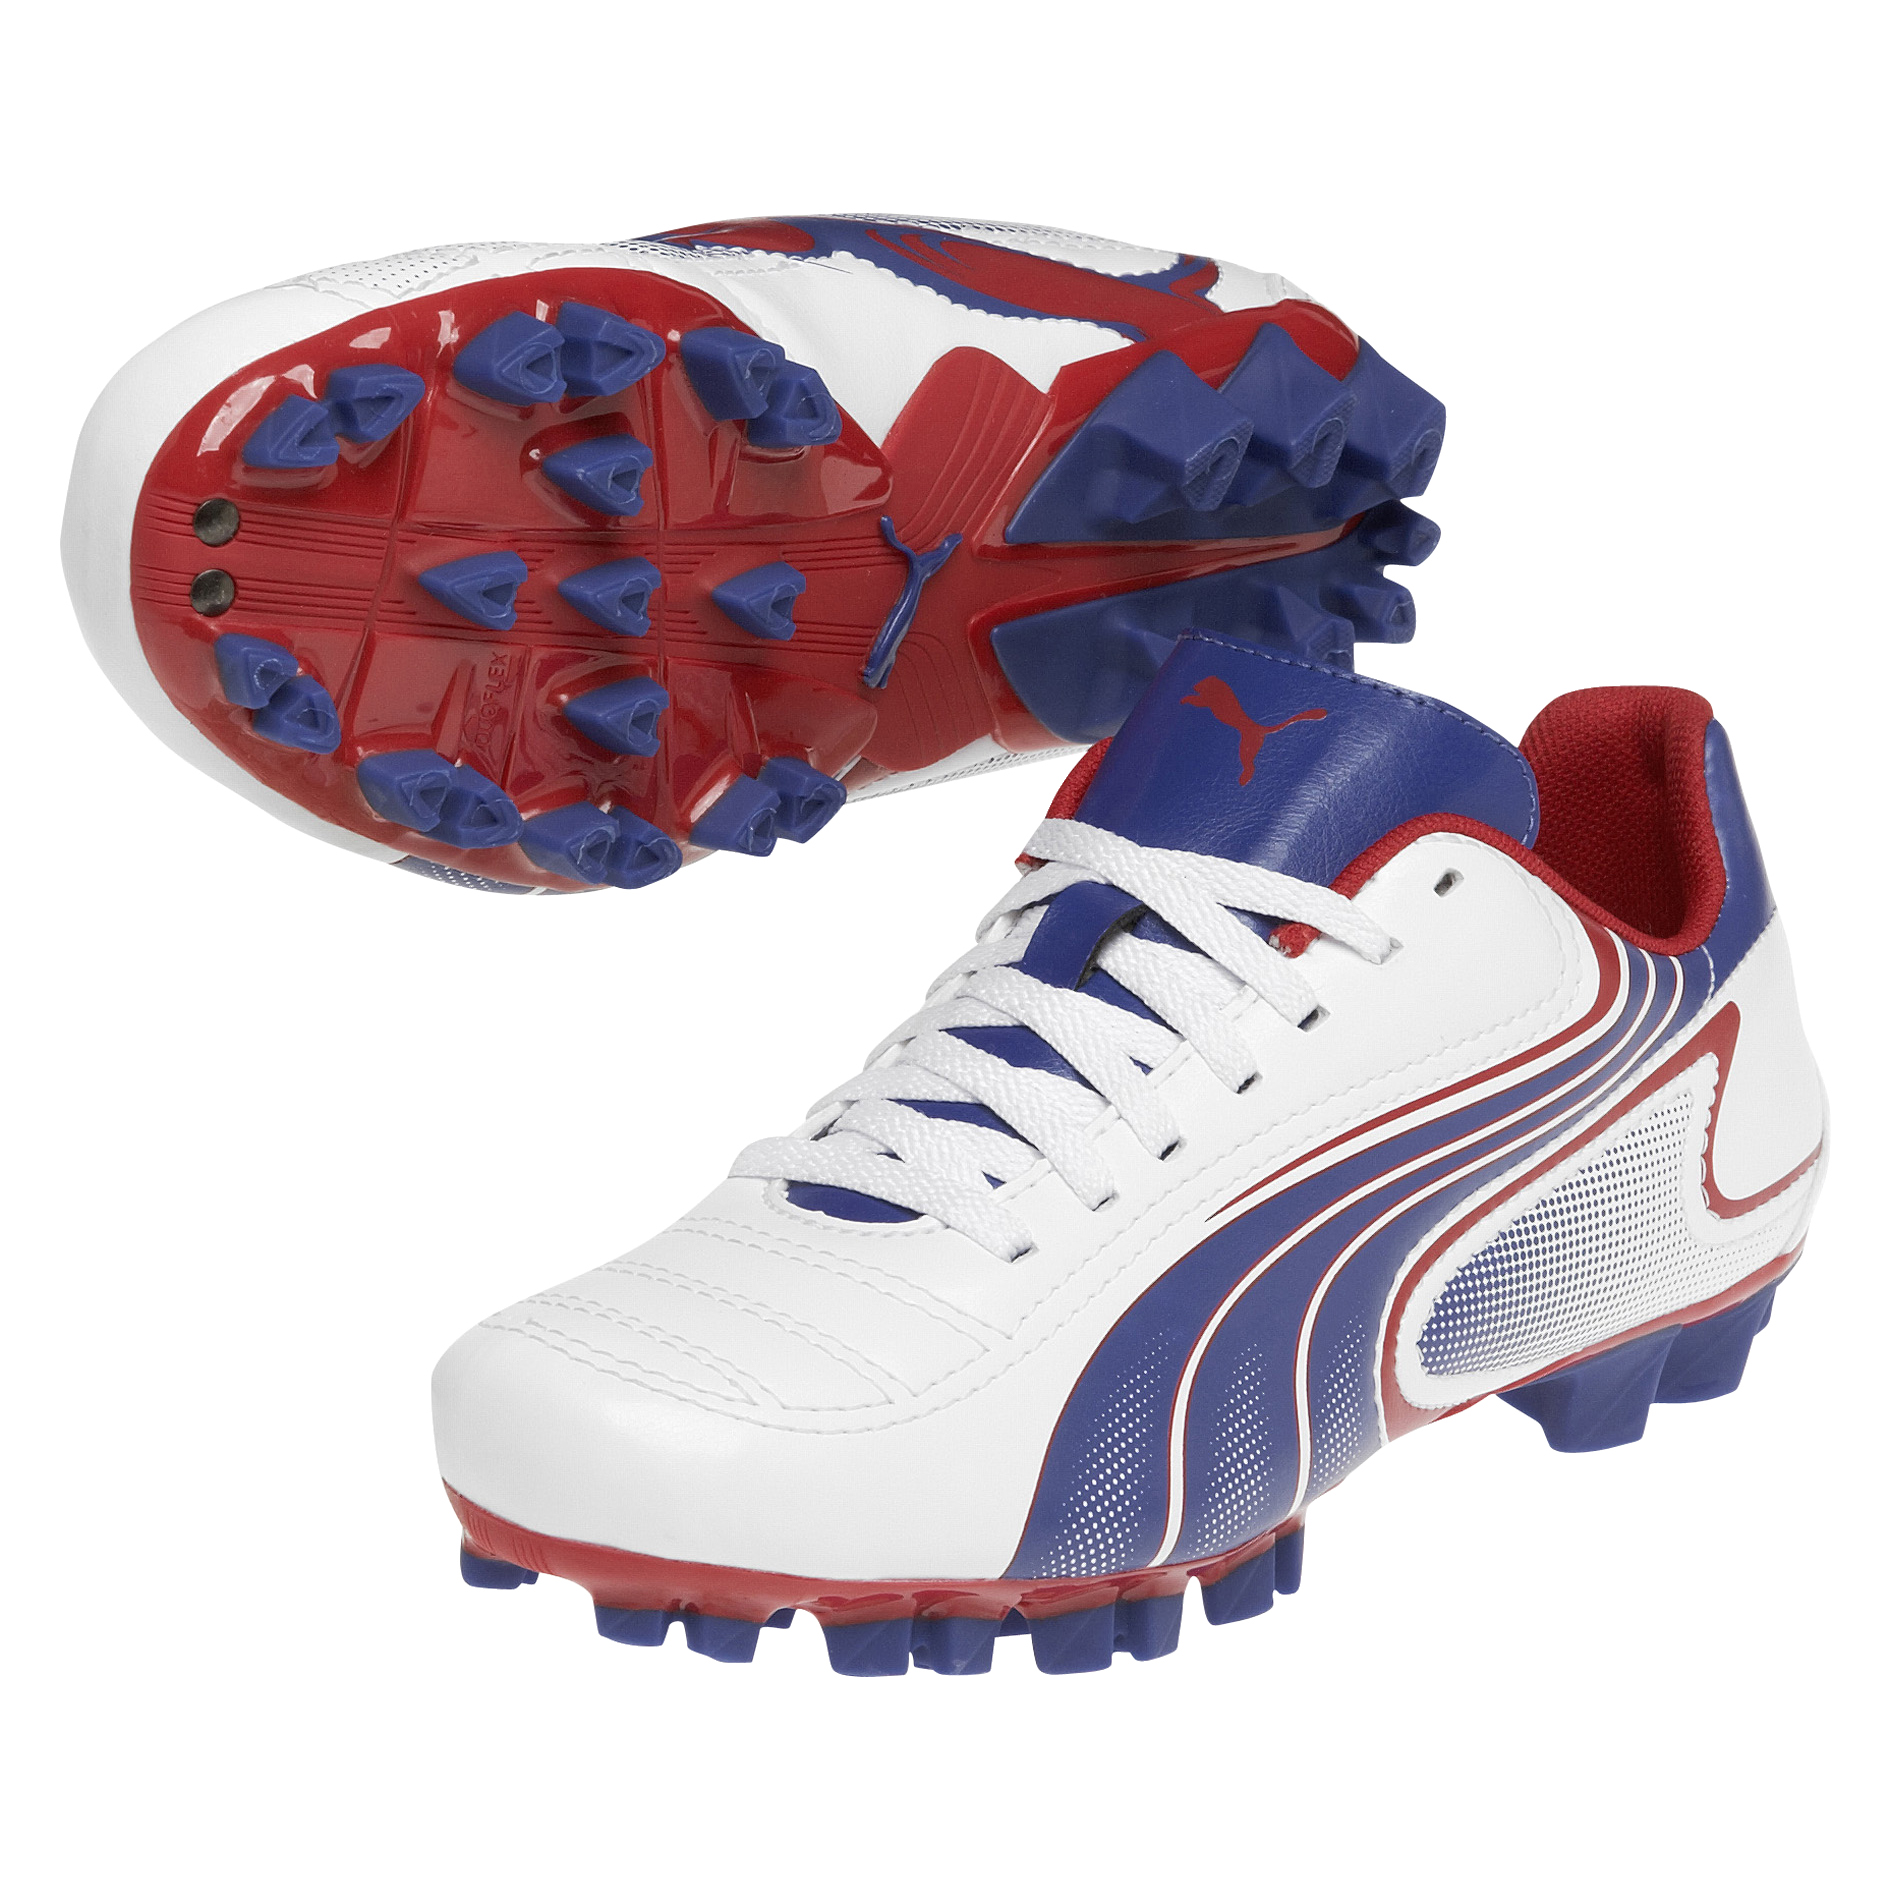 Puma Powercat V6.11 Firm Ground Football Boots  -Kids - White-Limoges-Ribbon Red